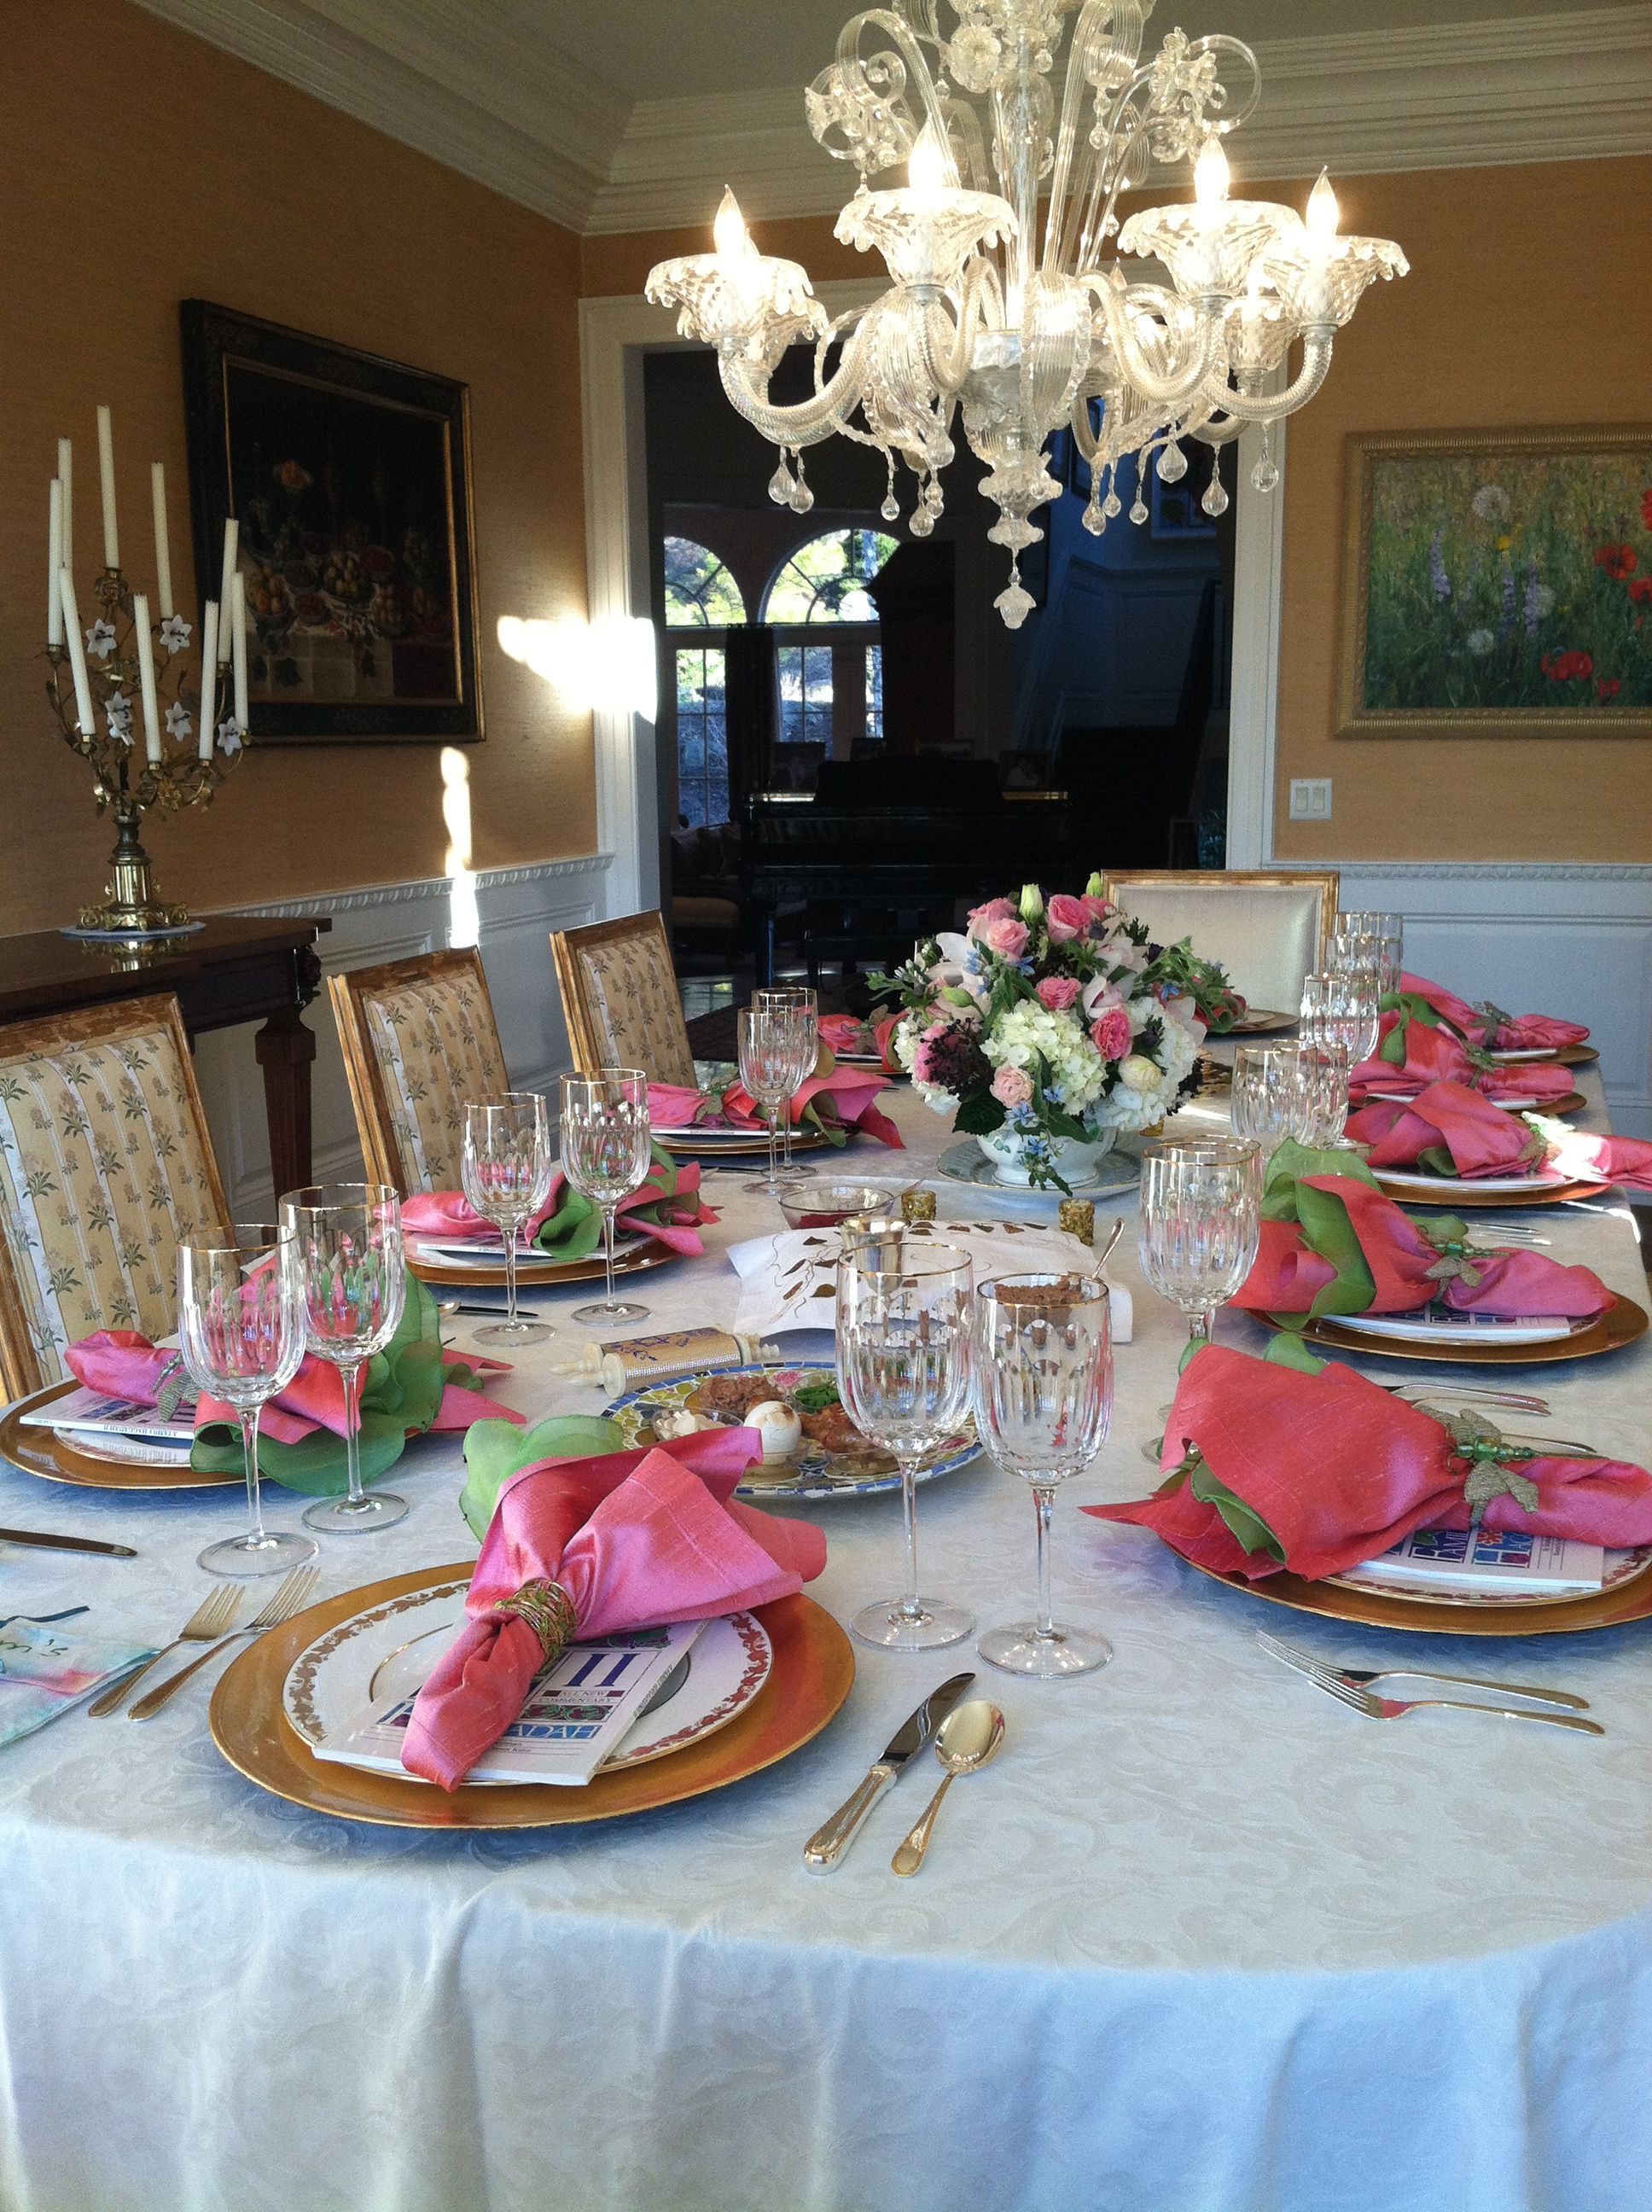 Table setting for Passover